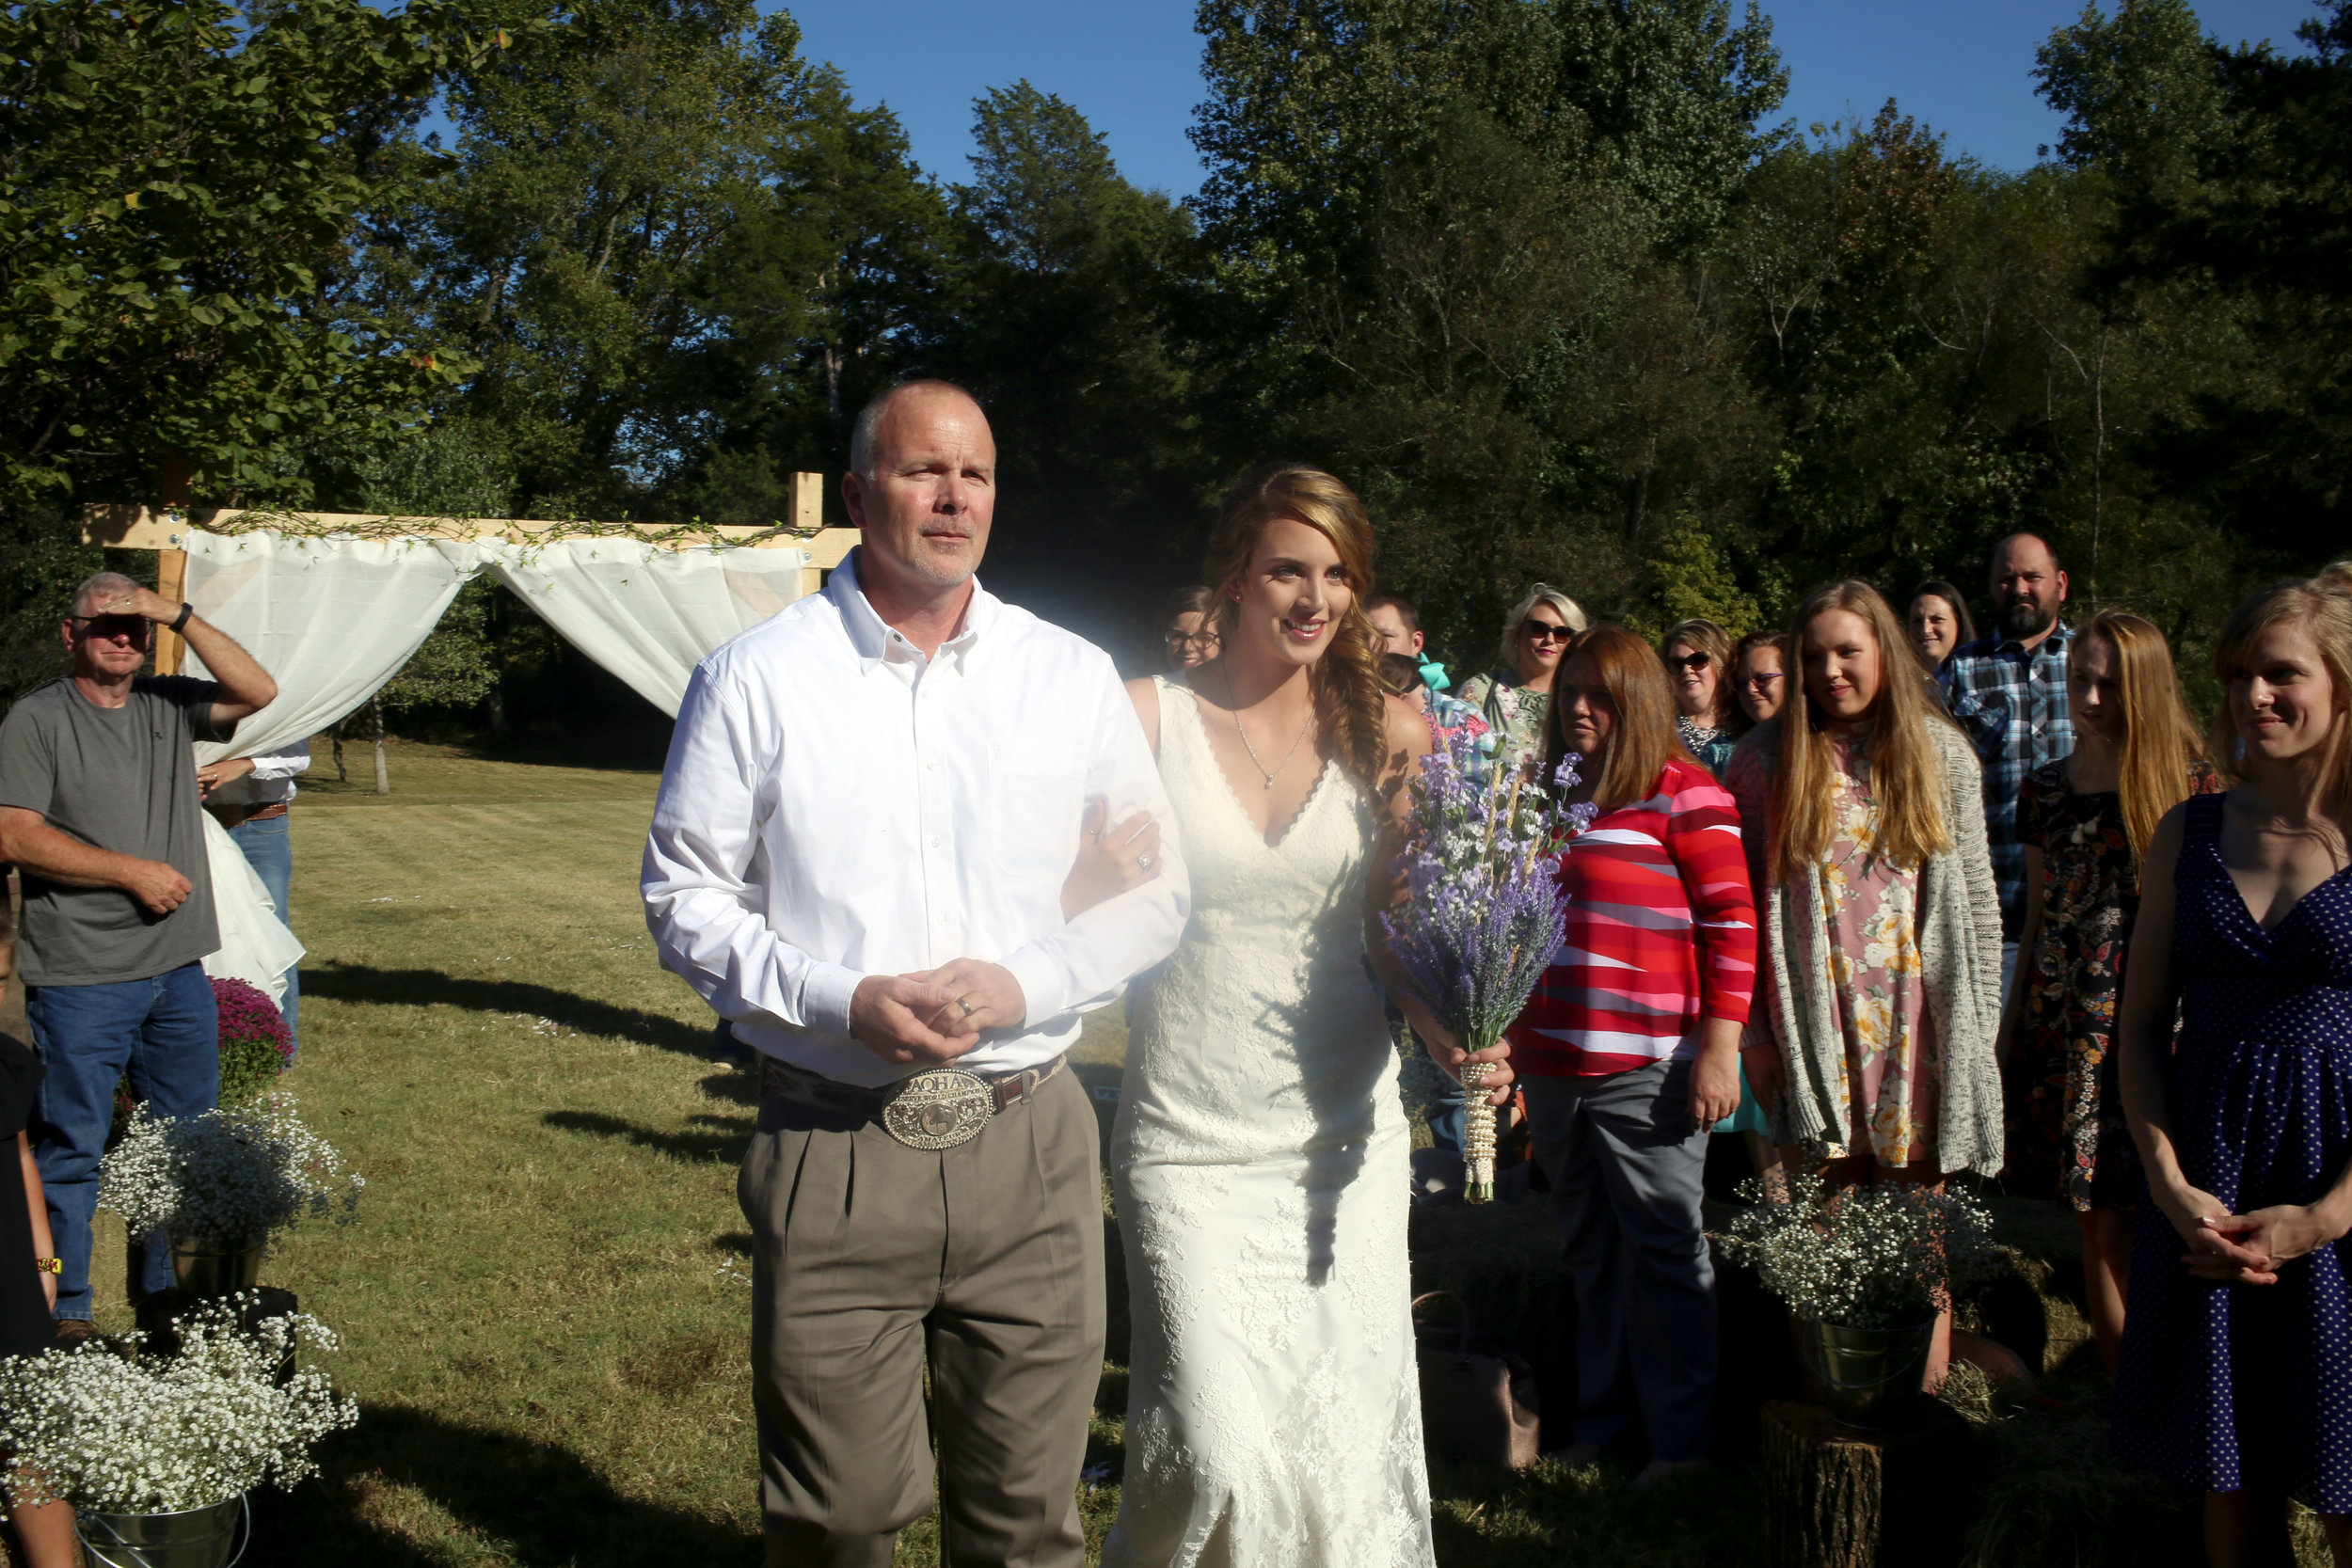 moreland_wedding_045.jpg